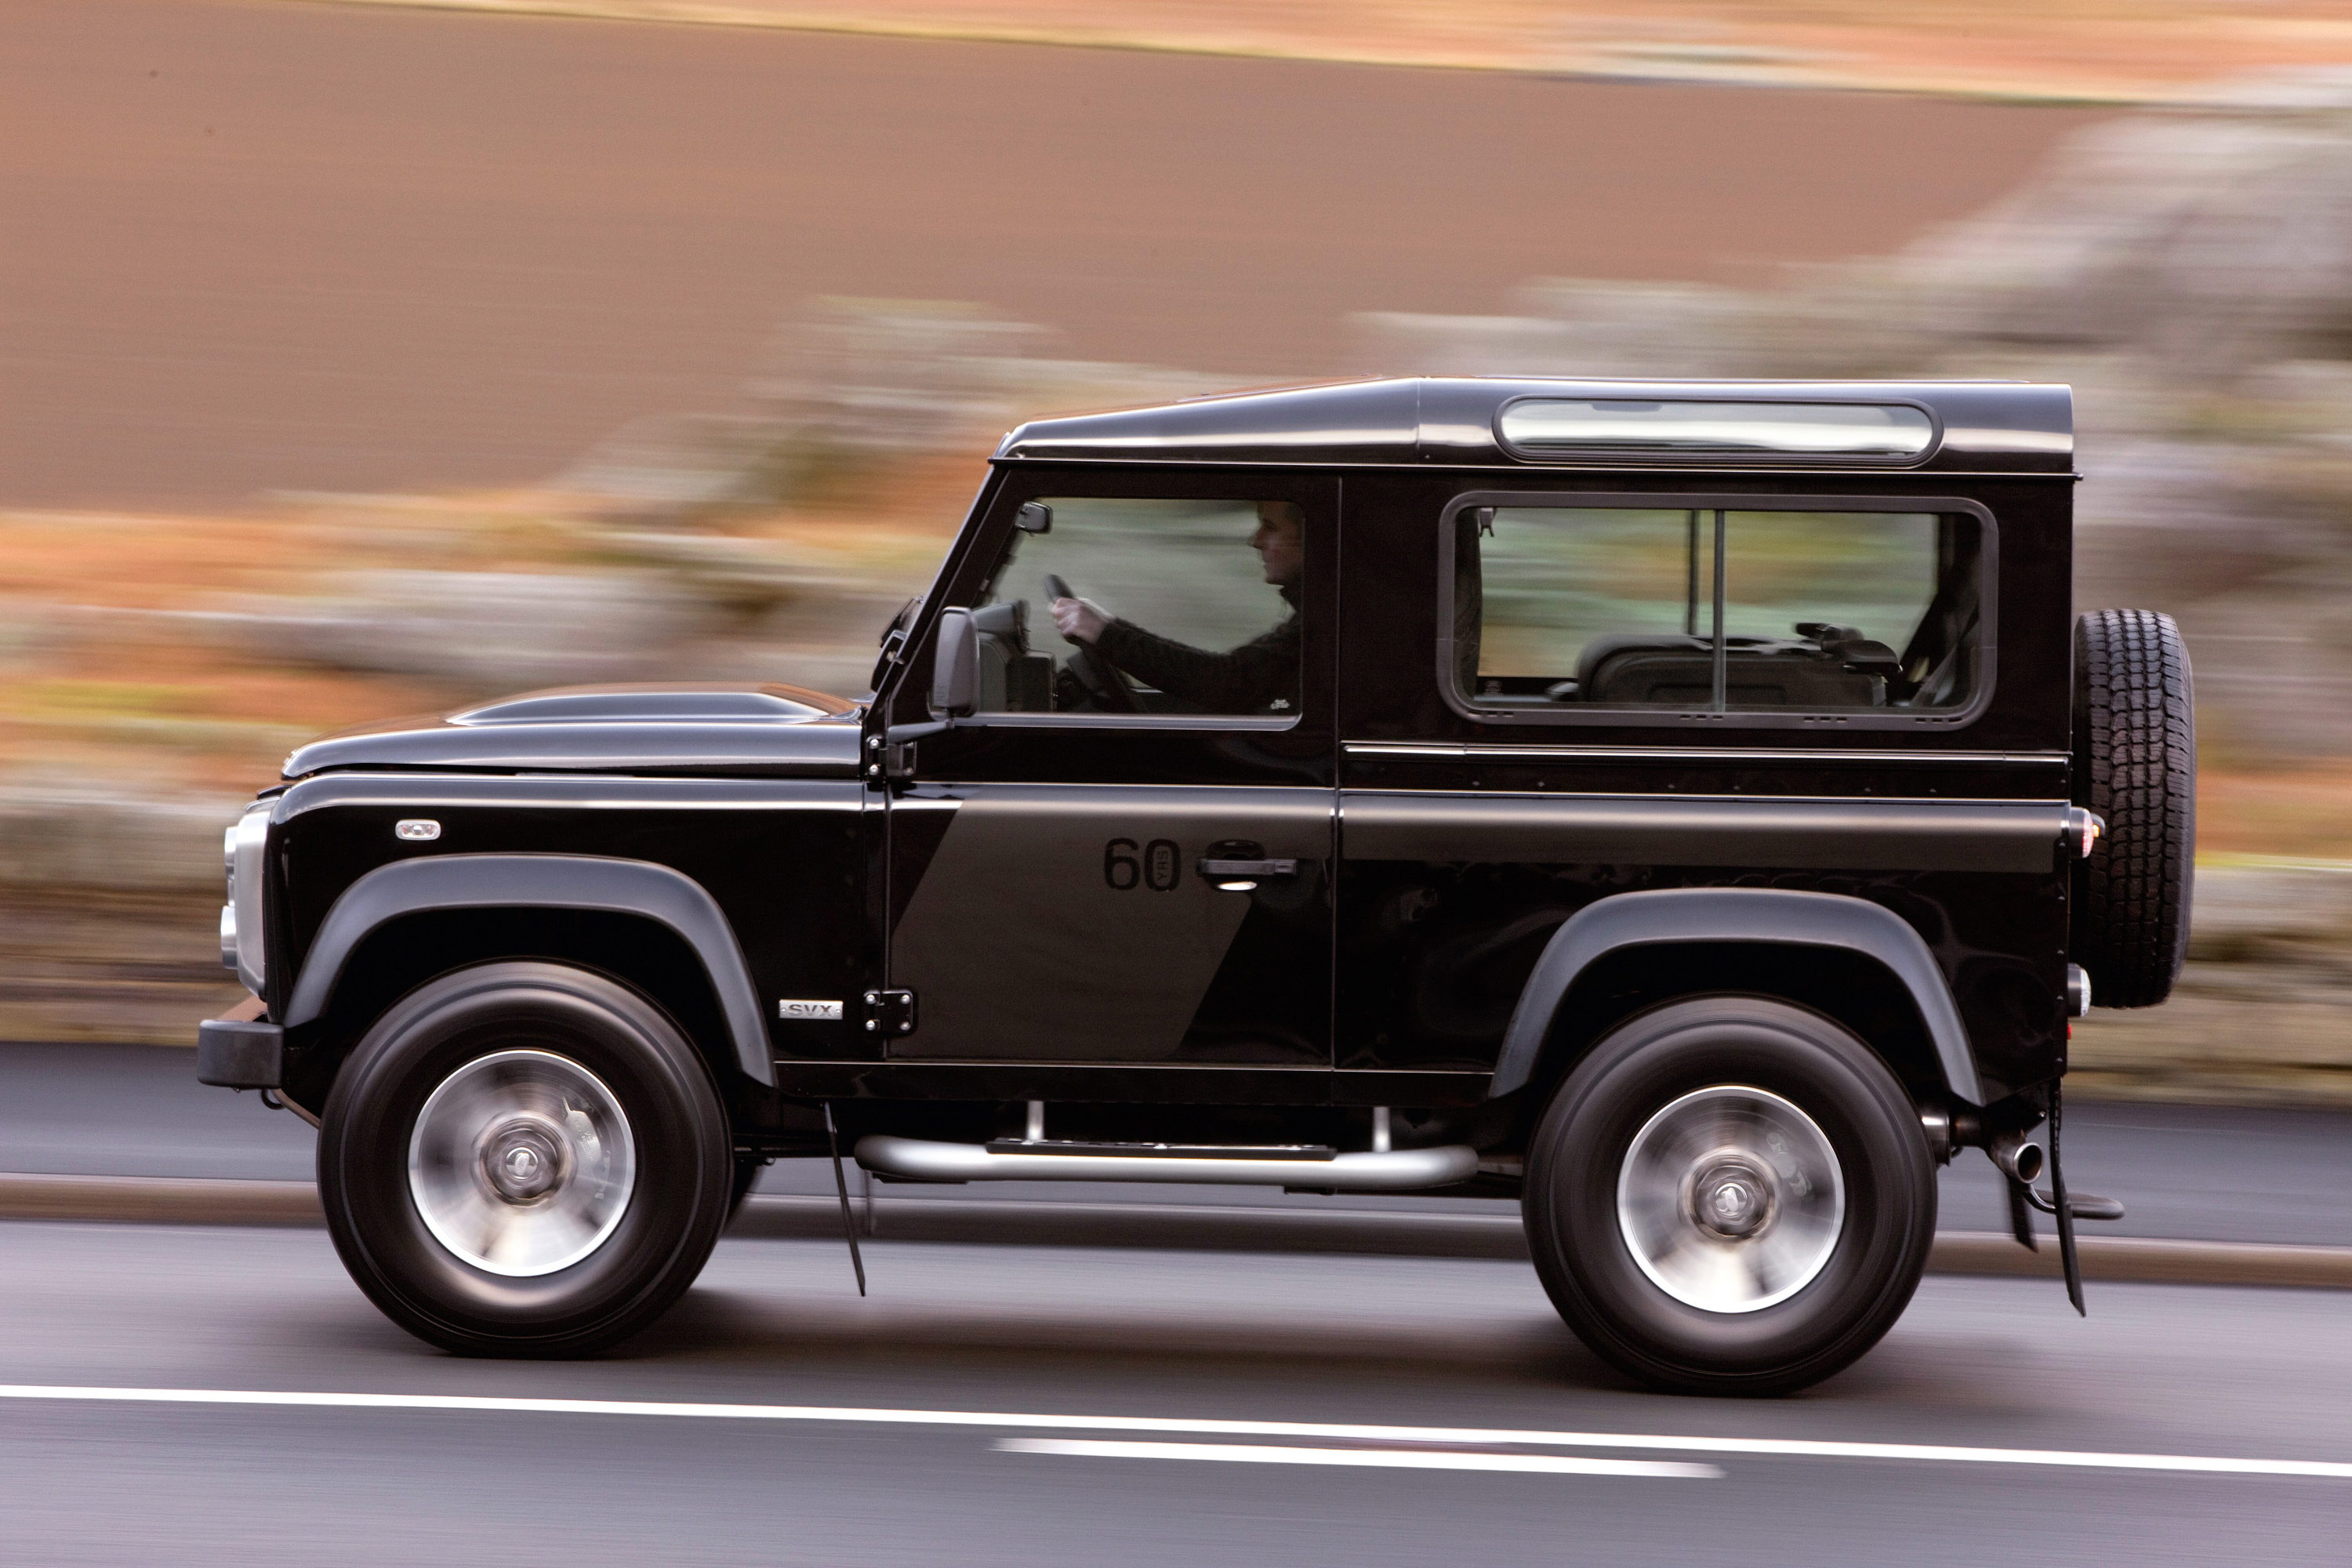 https://www.carsinvasion.com/gallery/2008-land-rover-defender-svx/2008-land-rover-defender-svx-10.jpg